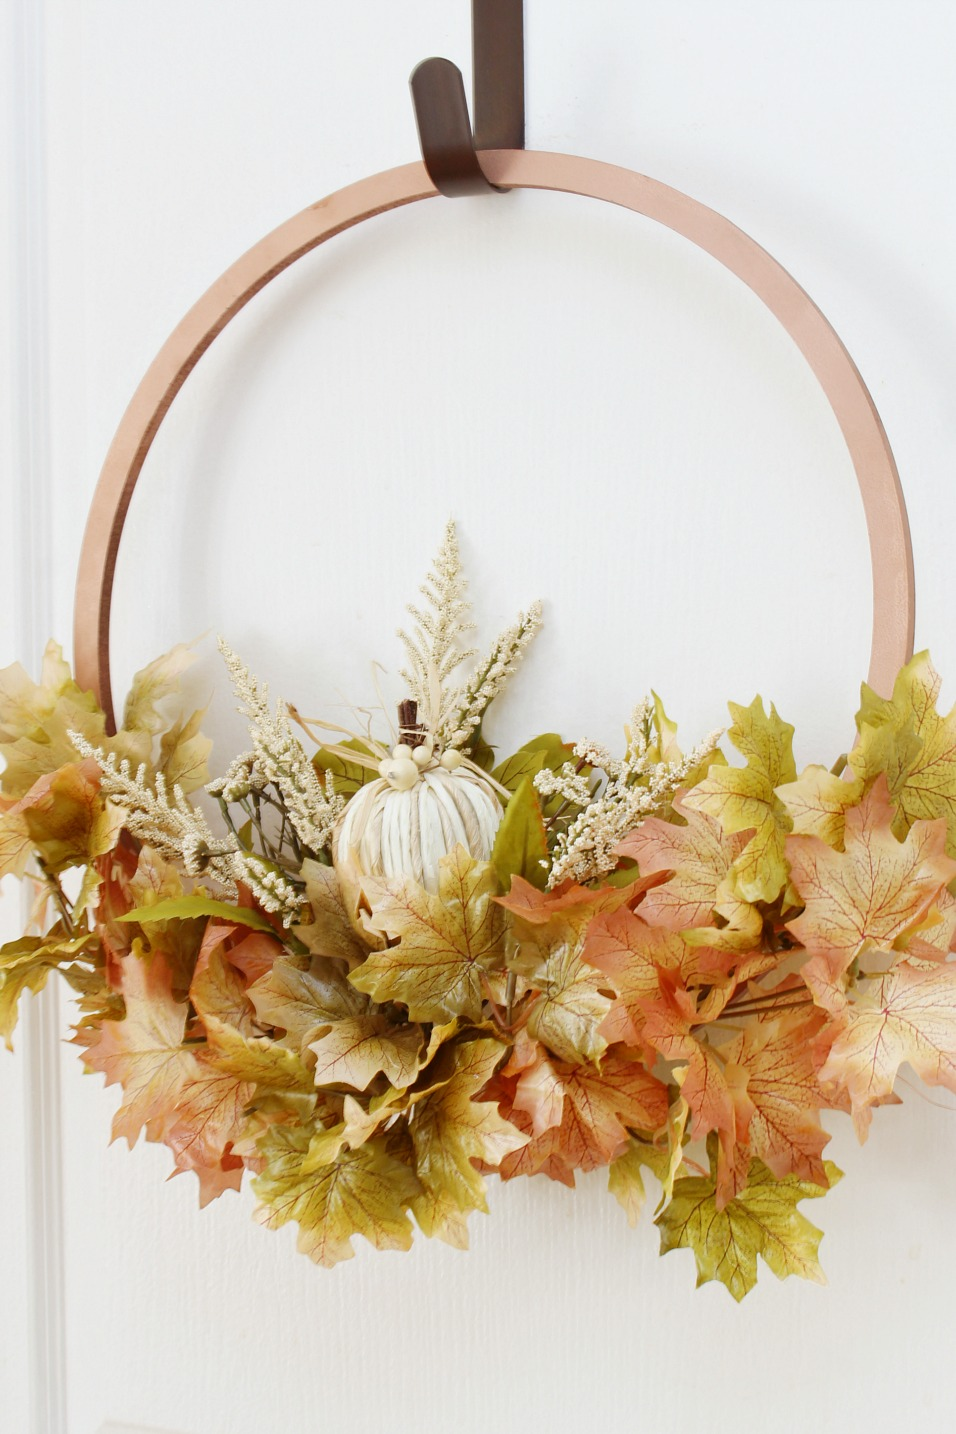 Copper hoop wreath with fall leaves.